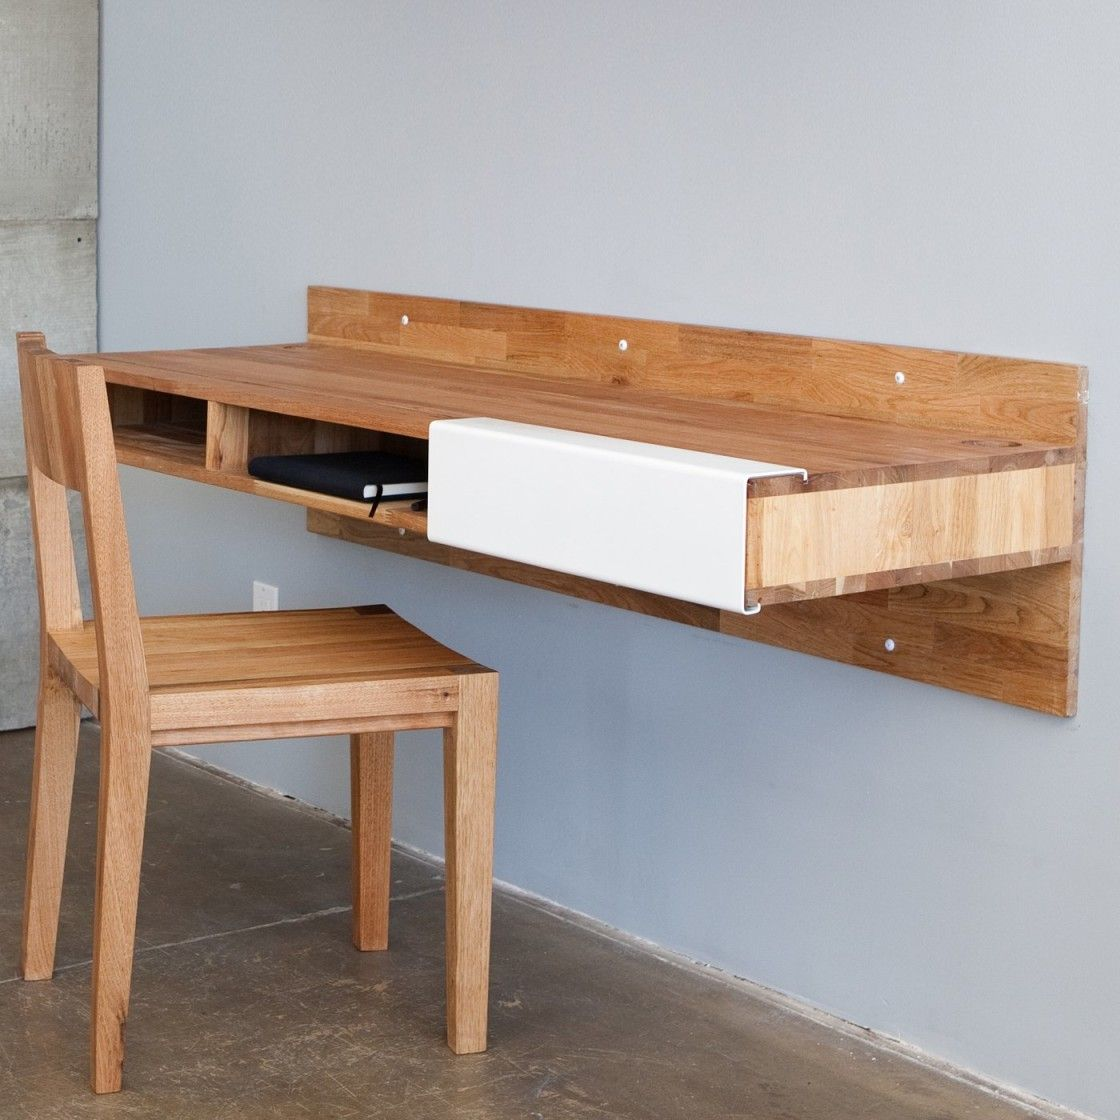 Amazing Custom Diy Wood Wall Mounted Floating Computer Desk With Storage Ideas Along Drawer Attached On Light Floating Computer Desk Diy Desk Plans Home Decor